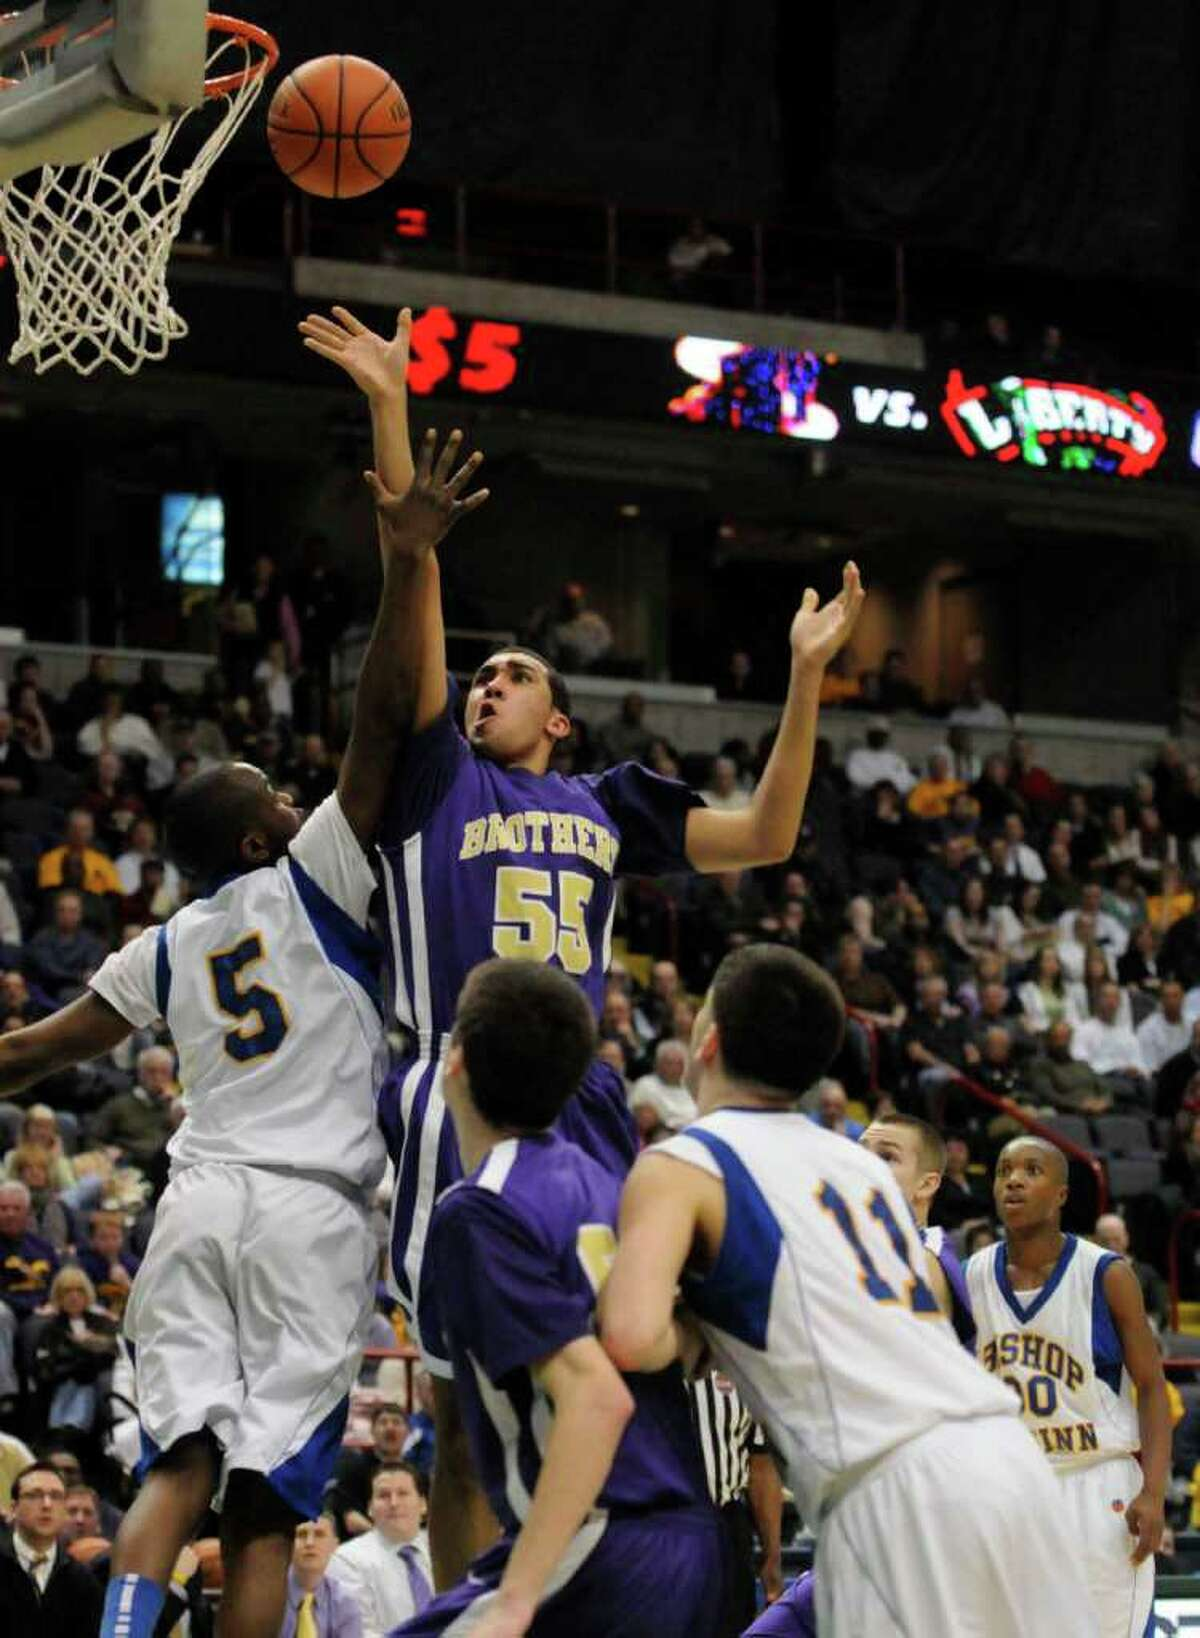 Christian Brothers Nate Robinson puts a shot up during their Section 2 Class AA boys basketball finals win 69-46 over Bishop Maginn at the Times Union Center in Albany Tuesday March 8, 2011.( Michael P. Farrell/Times Union )